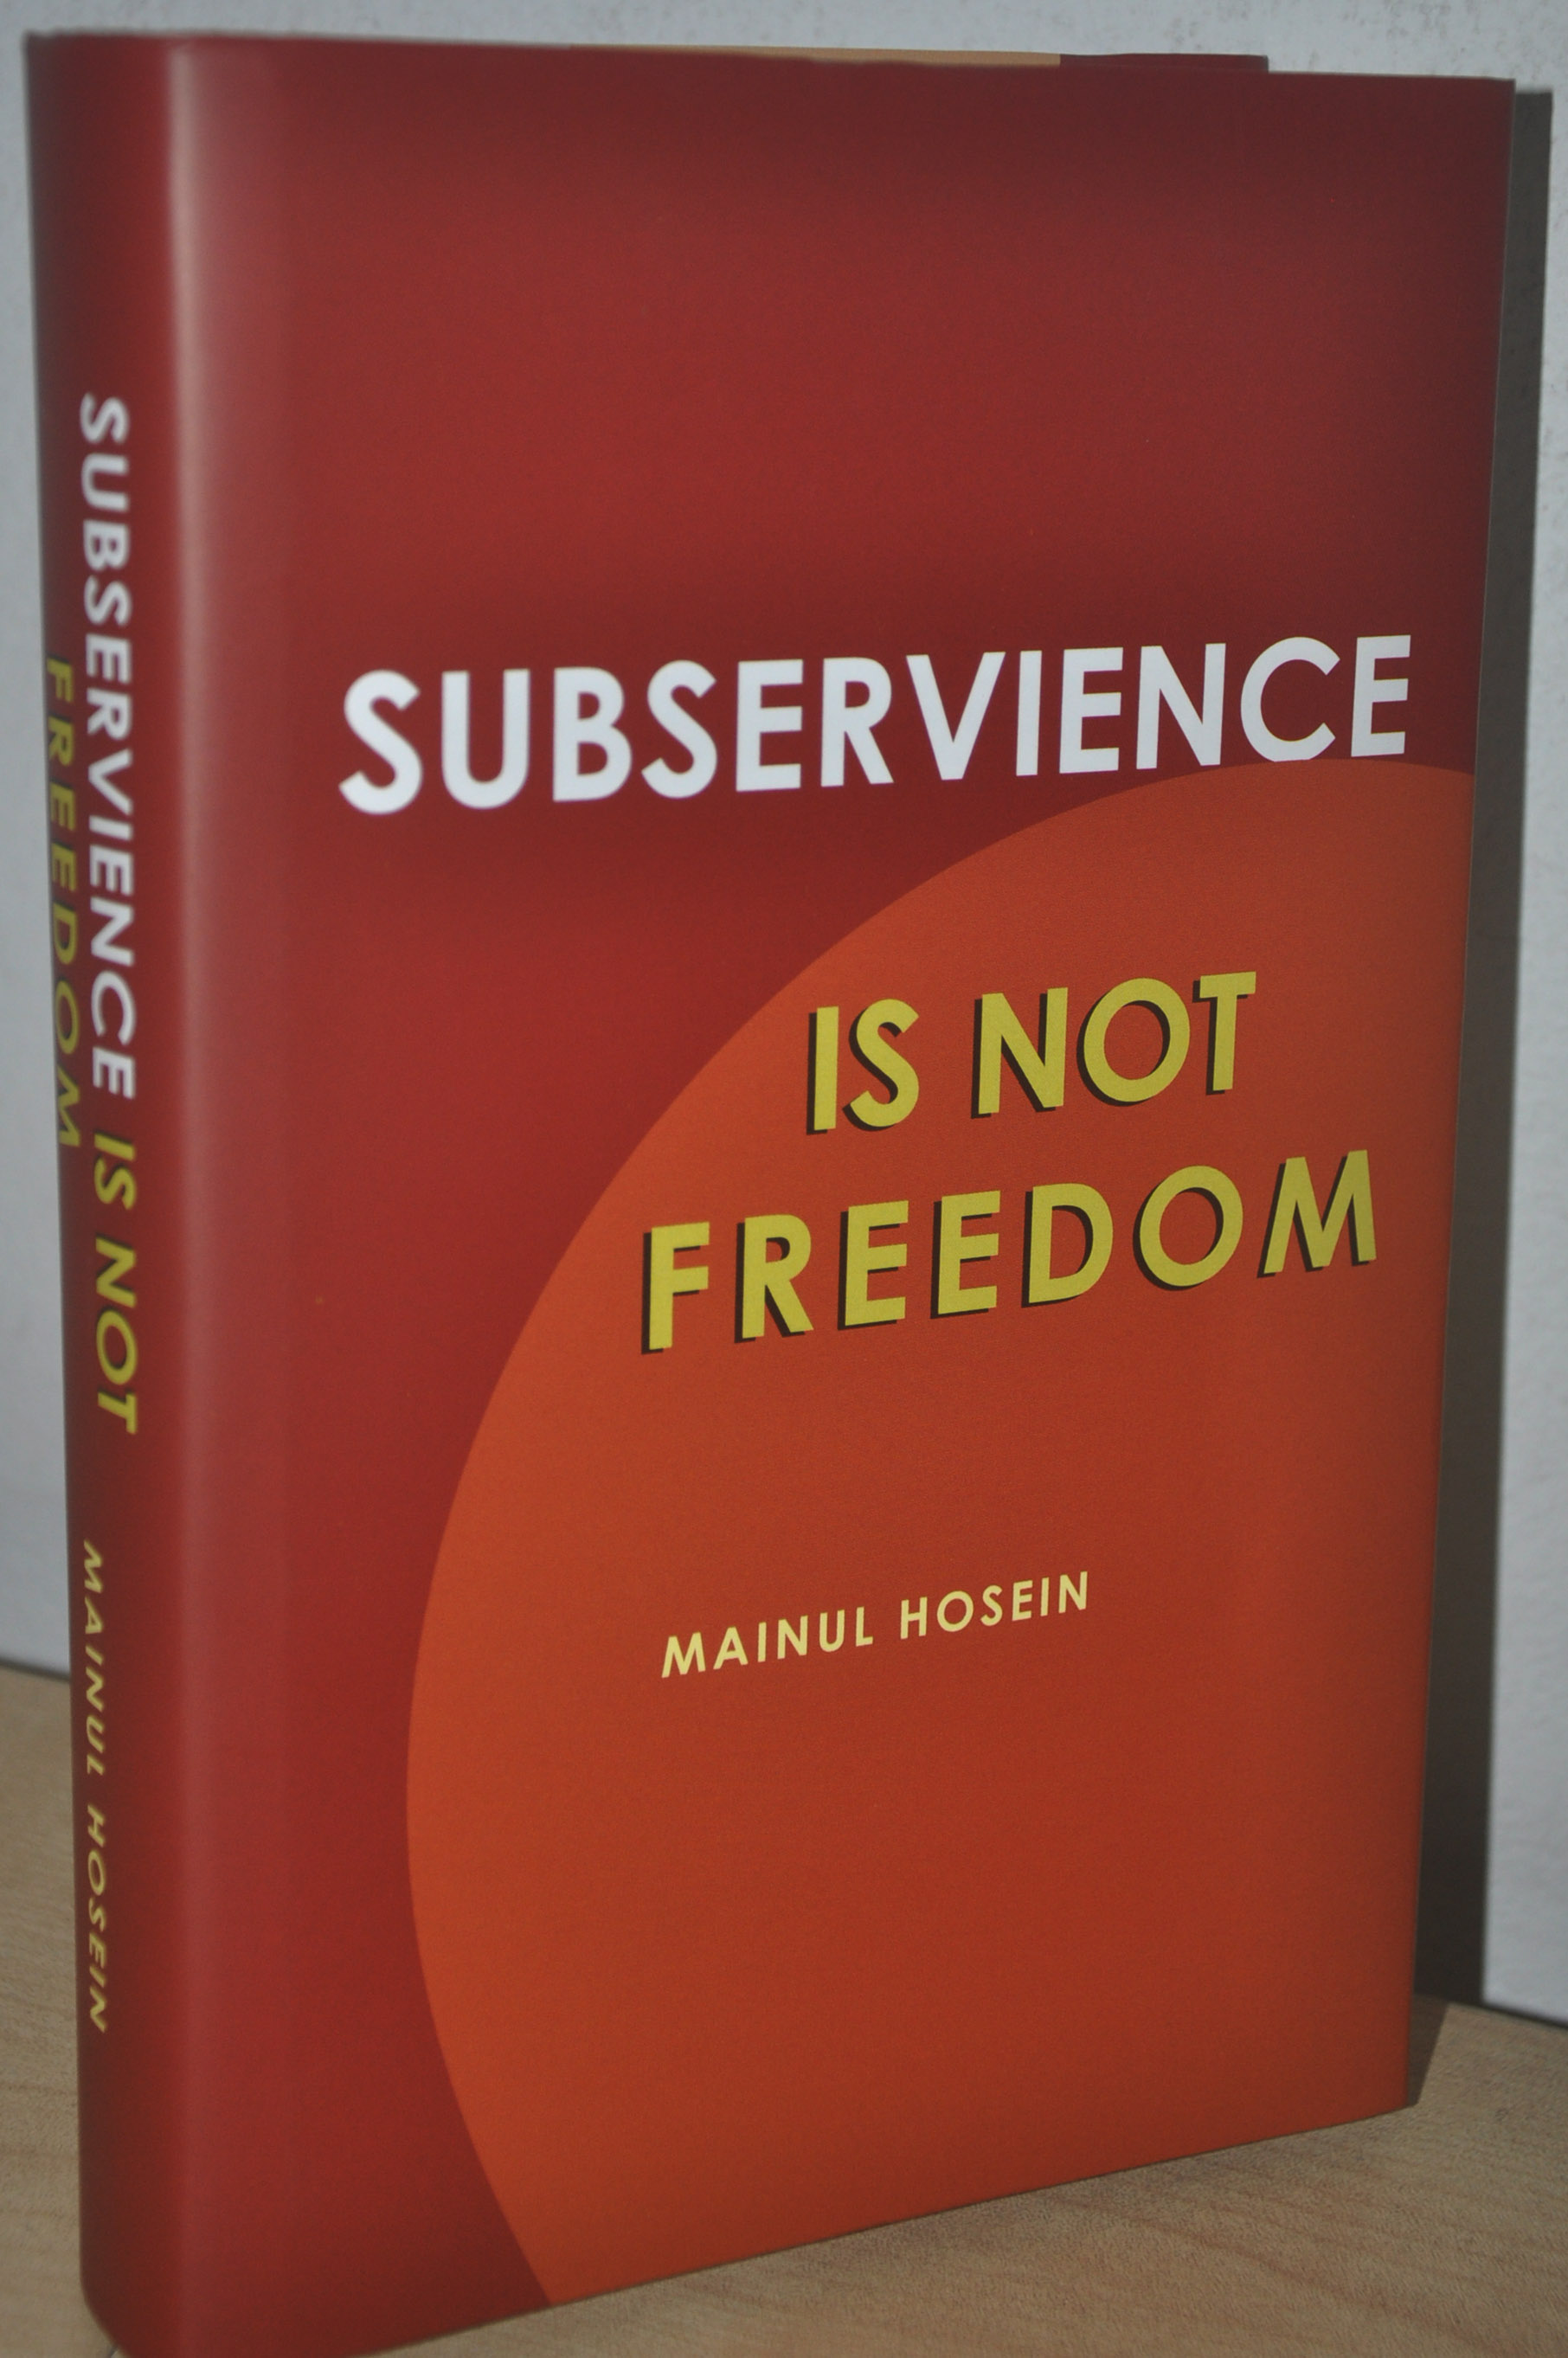 SUBSERVIENCE IS NOT FREEDOM